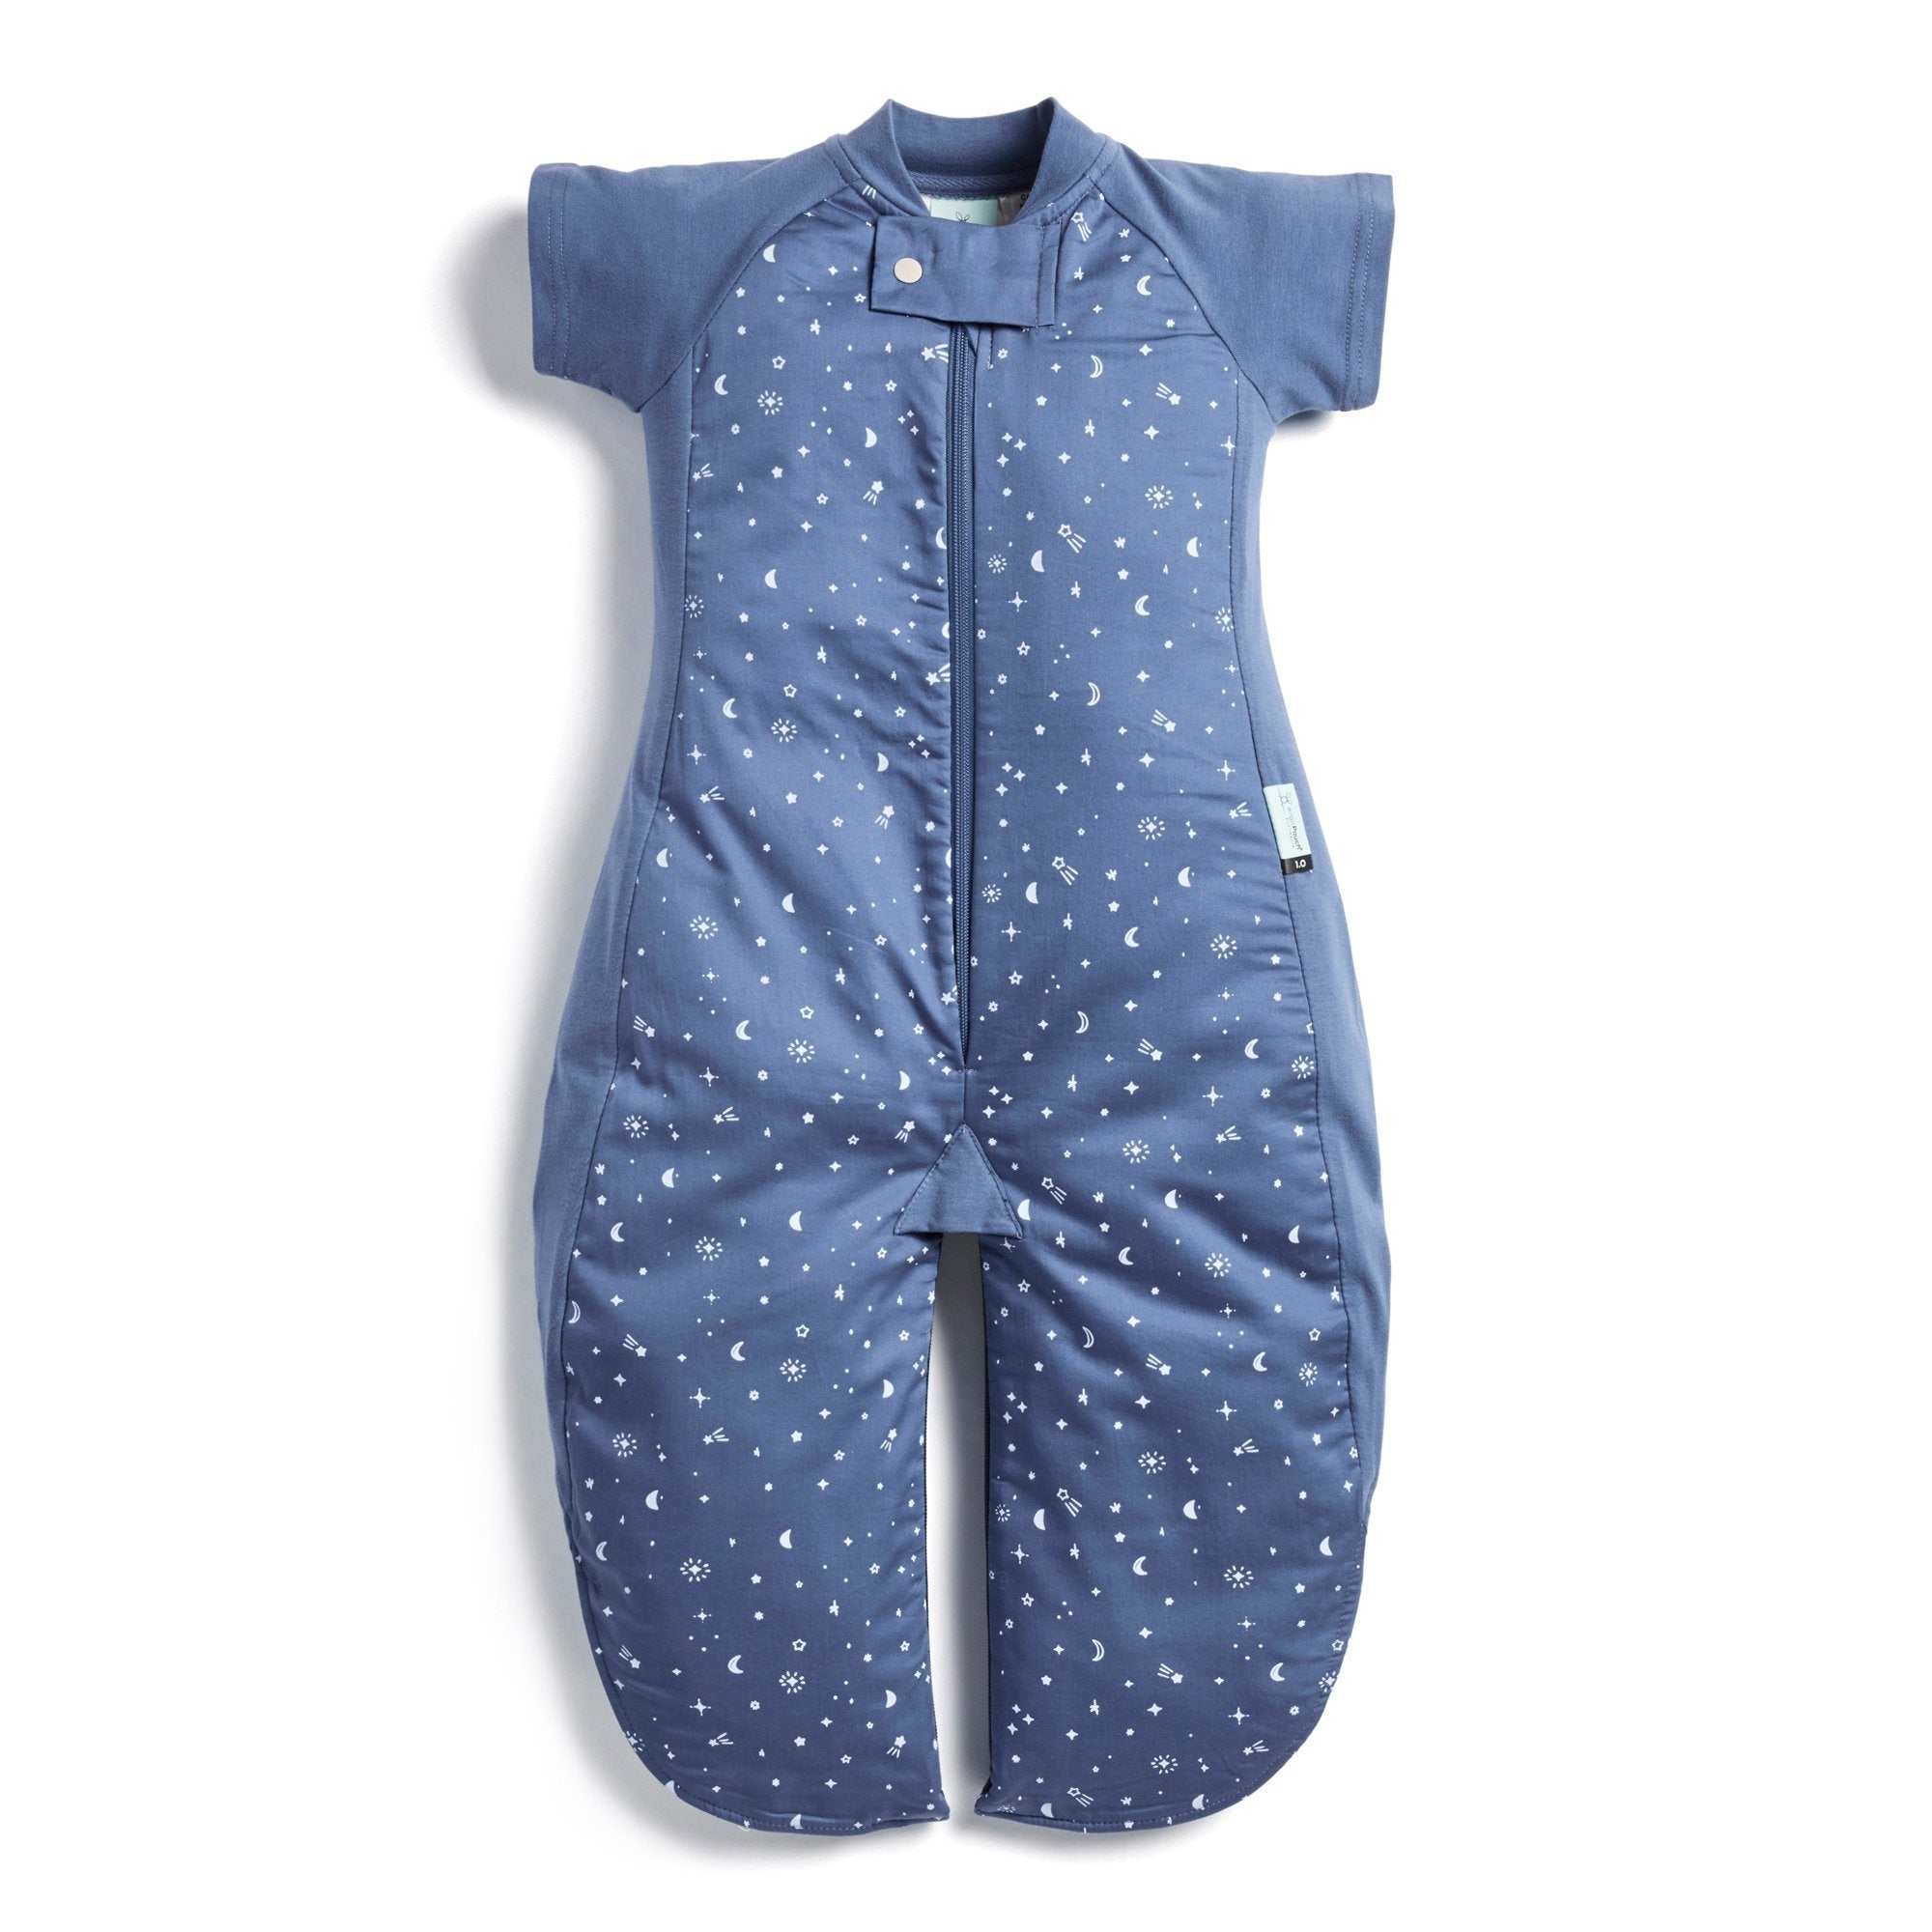 Sleep Suit Bag 1.0 tog (Night Sky)